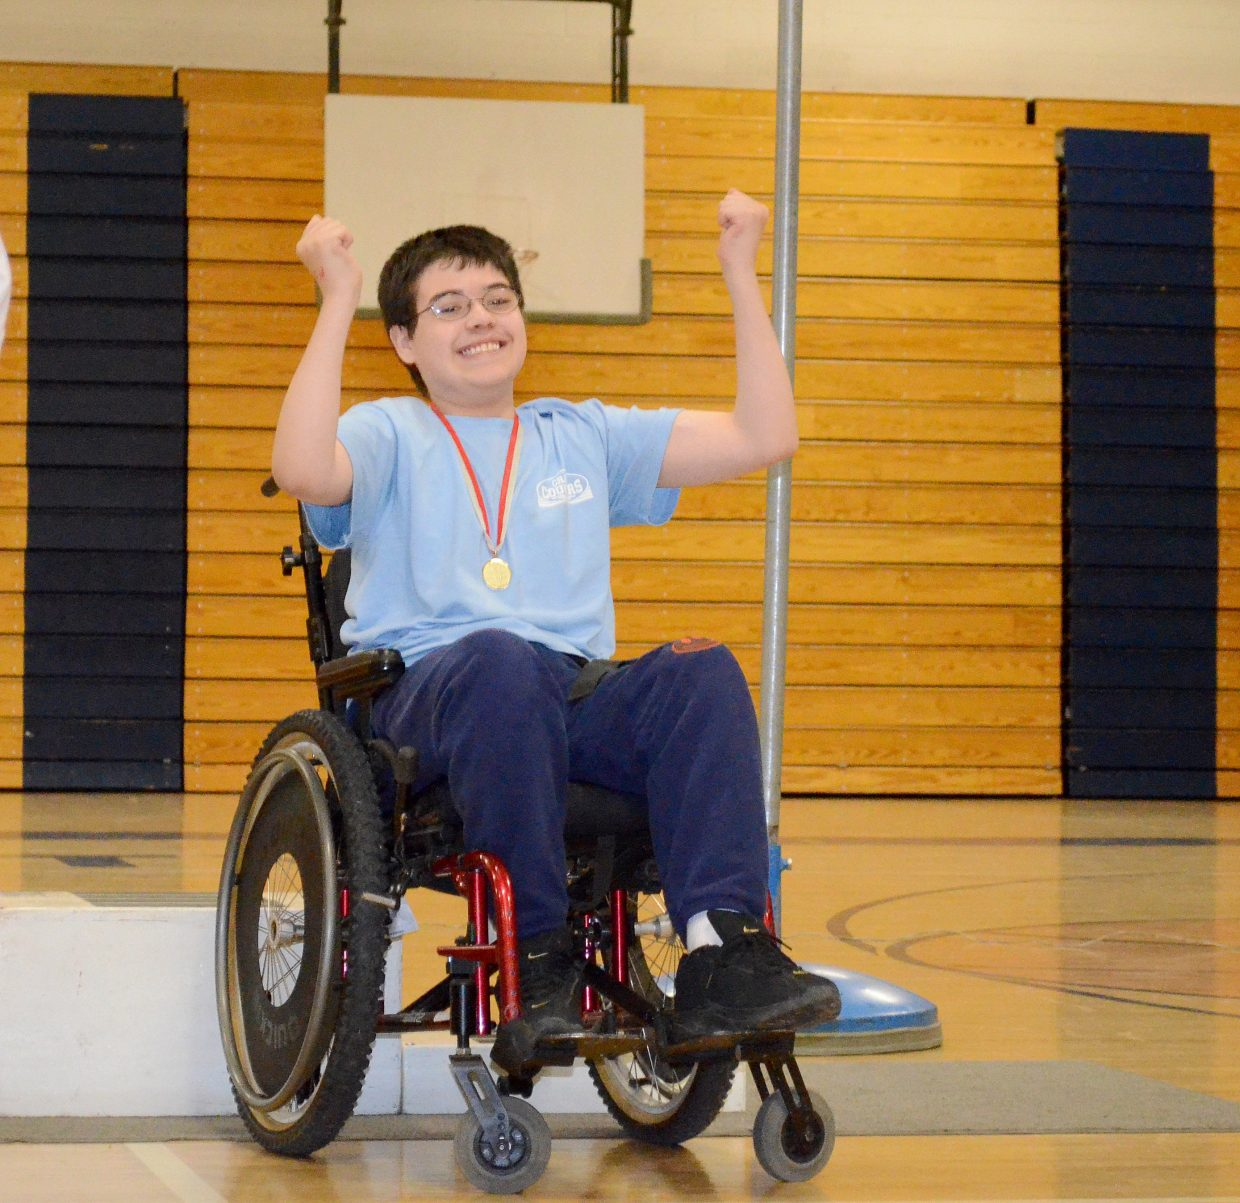 William Johnson celebrates receiving a medal during at the Western Area Summer Games.